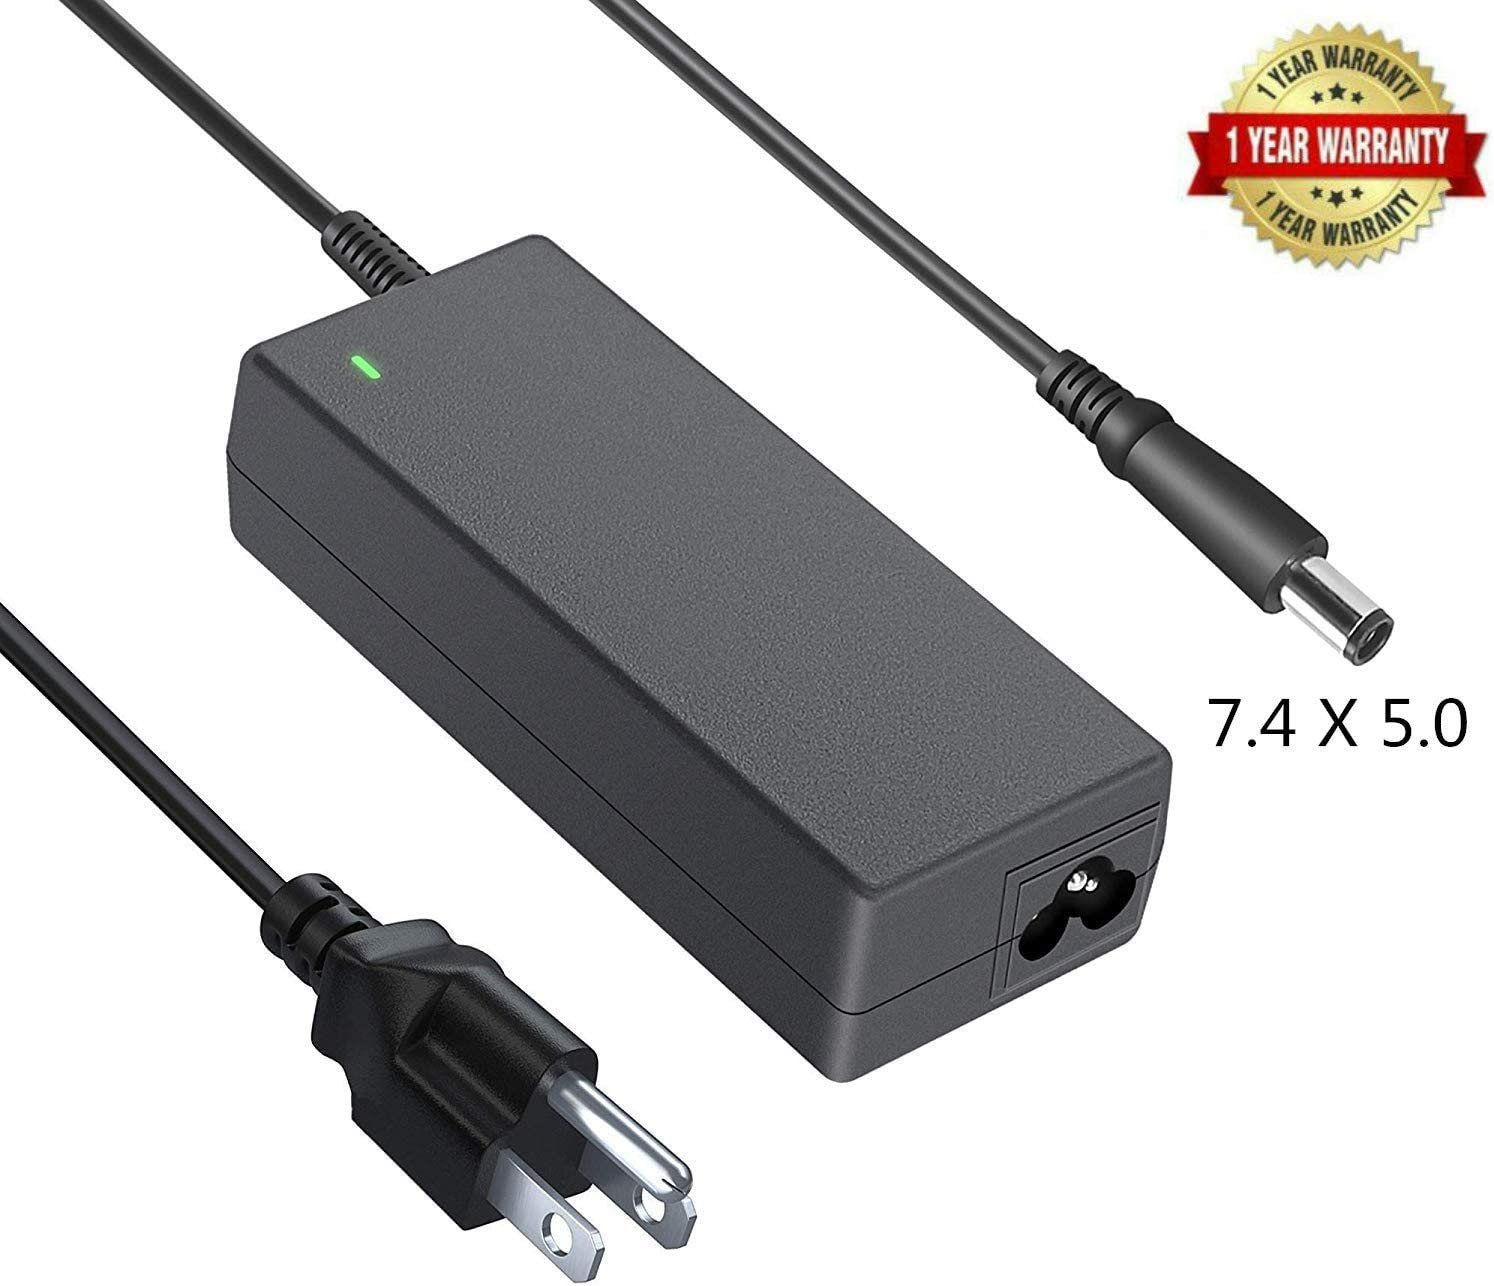 65W 19.5V 3.34A AC Adapter Laptop Charger for Dell Latitude E6420 E6430 E6430s E6430U E6440 E6500 E6510 E6520 E6530 E6540 E7240 E7250 E7440 E7450